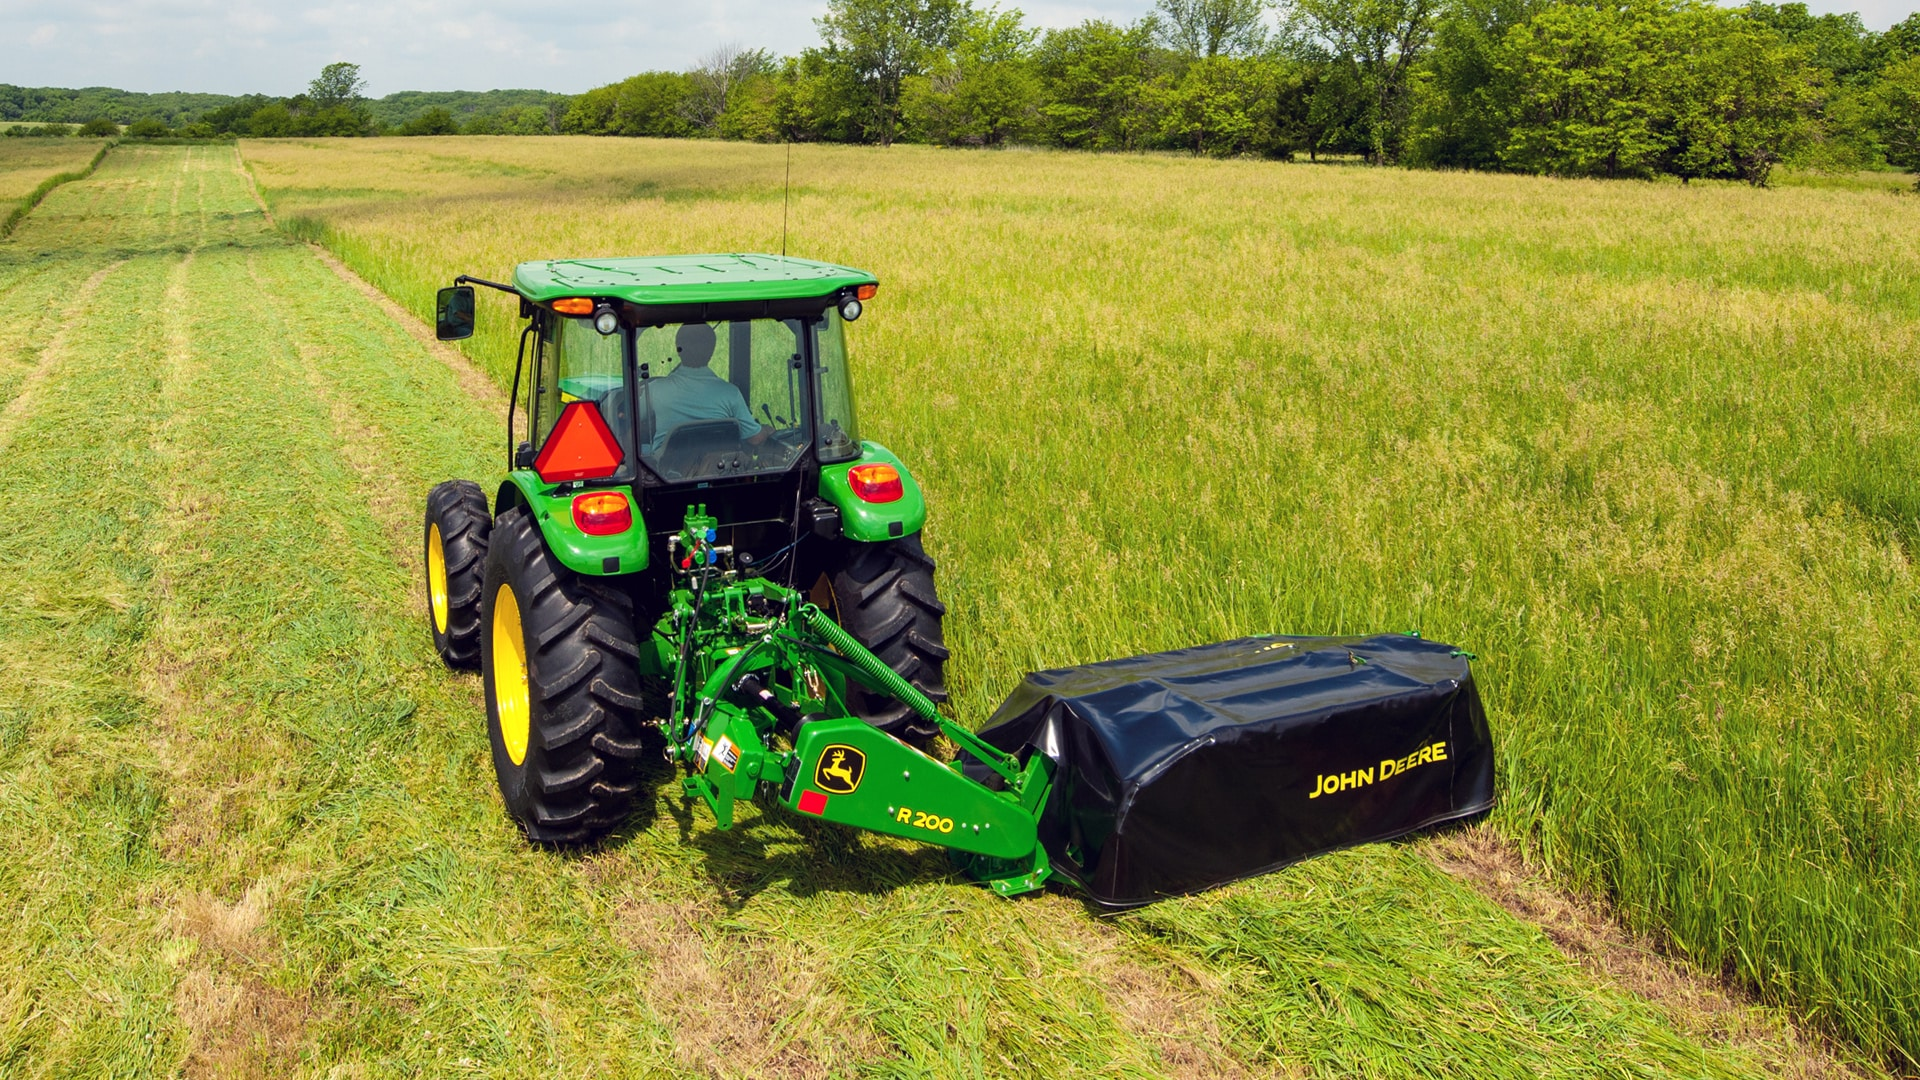 A disc mower moving through field